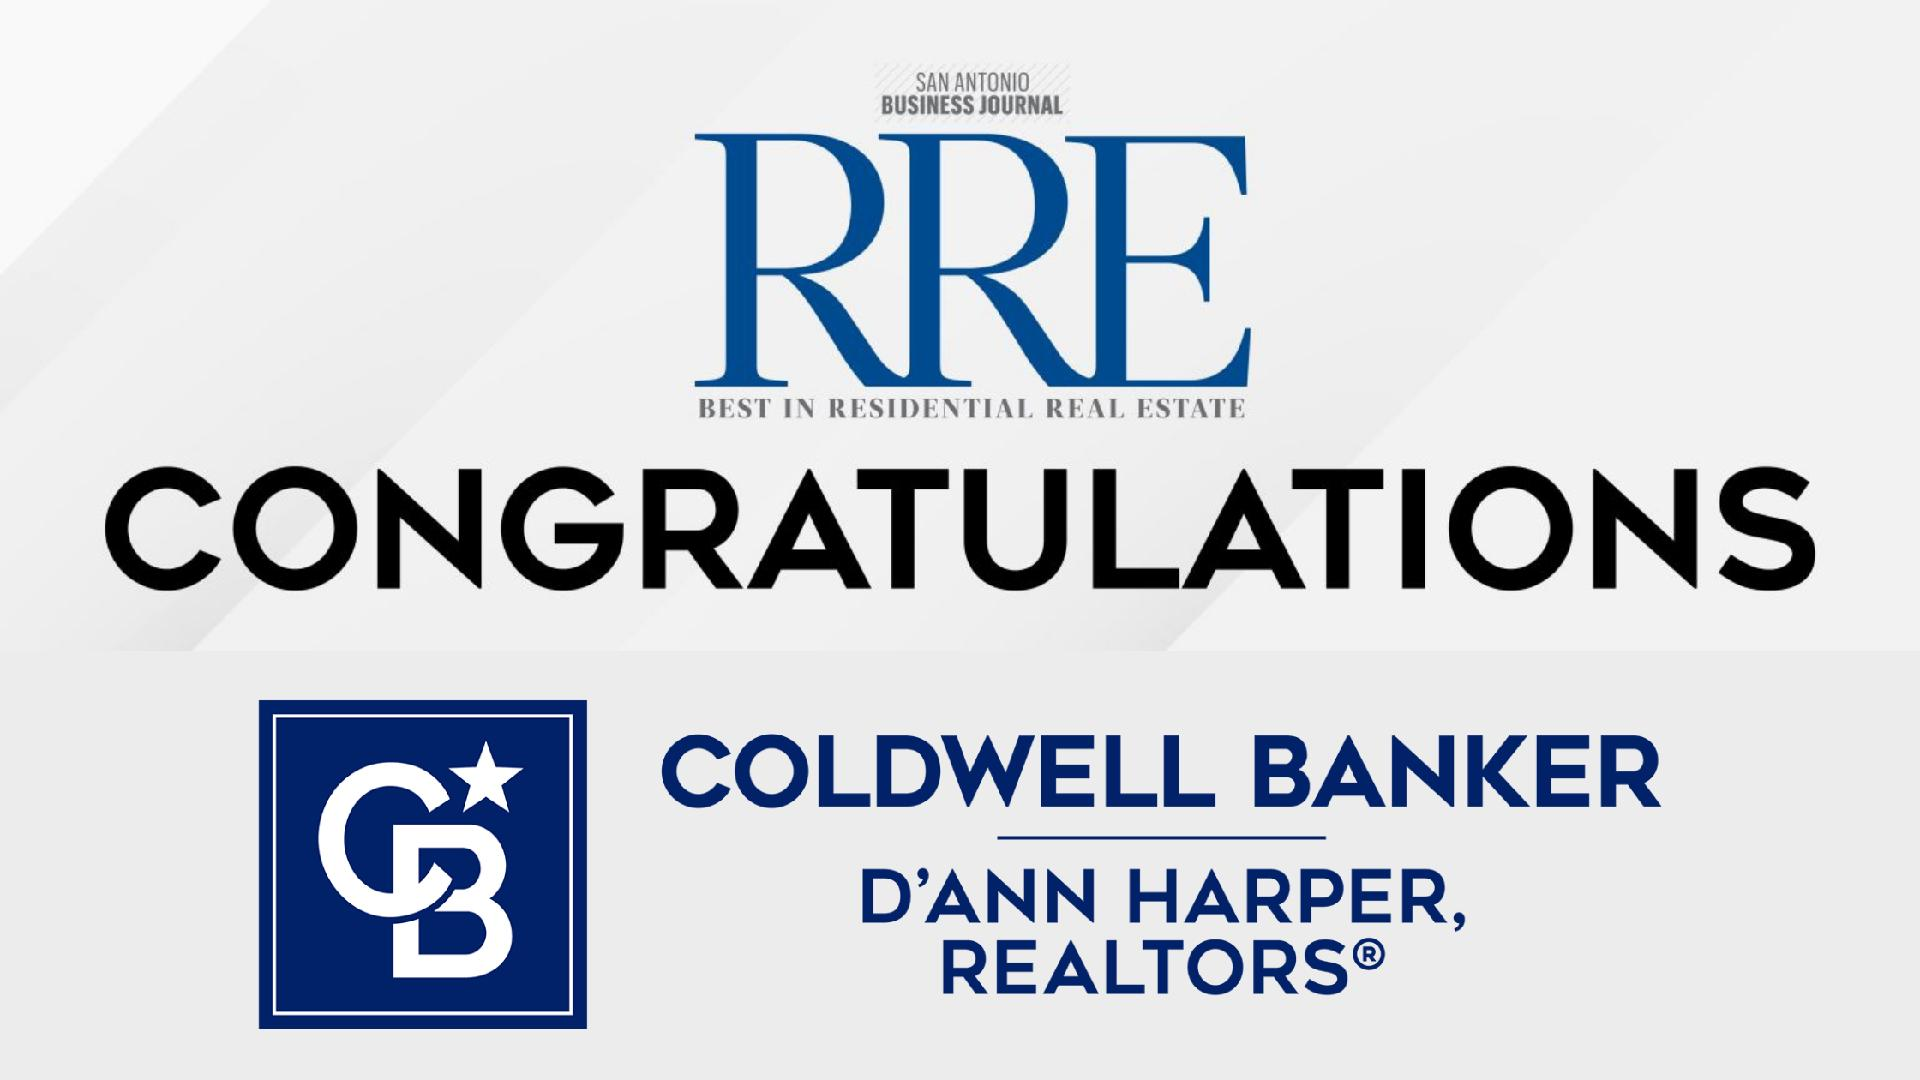 Coldwell Banker D'Ann Harper, REALTORS® Top Agents & Teams Recognized by SABJ as the 2021 Best in Residential Real Estate Main Photo